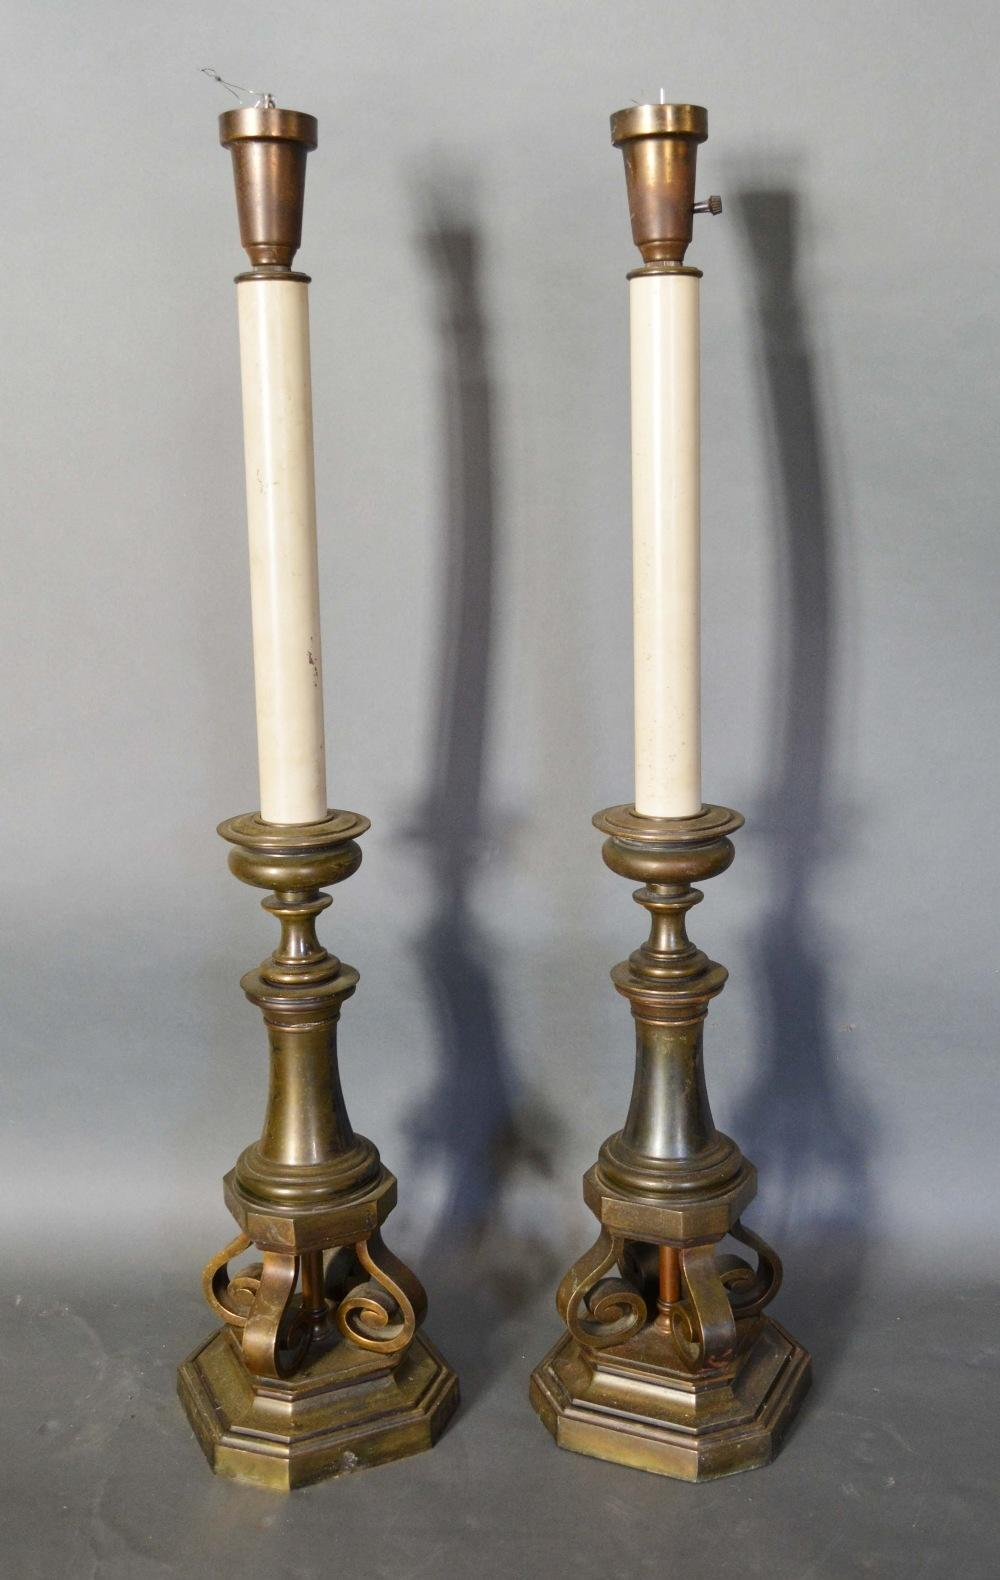 Lot 300 - A Pair of 18th Century Style Table Lamps in the form of candle stands, each with four scroll feet